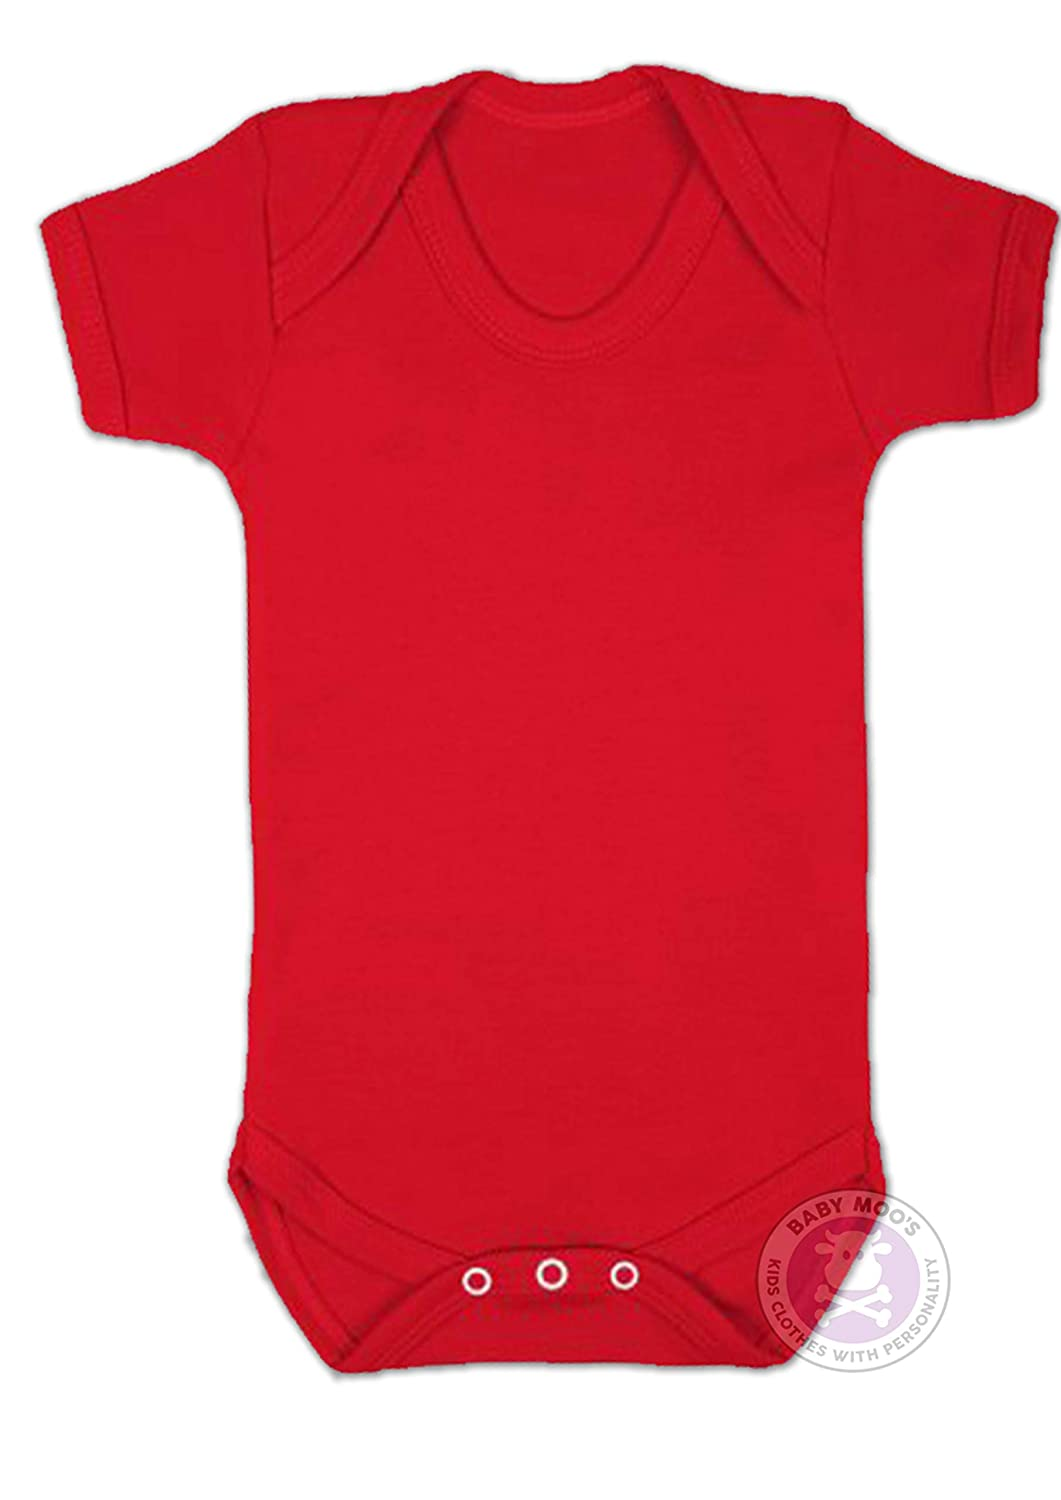 Baby Shower Gift Ideal for Printing or Embroidery New Baby Gift RED Blank Plain Baby Grow for Boys or Girls by BABY MOOS UK Bright Red Baby Vest//Bodysuit 3-6 Months